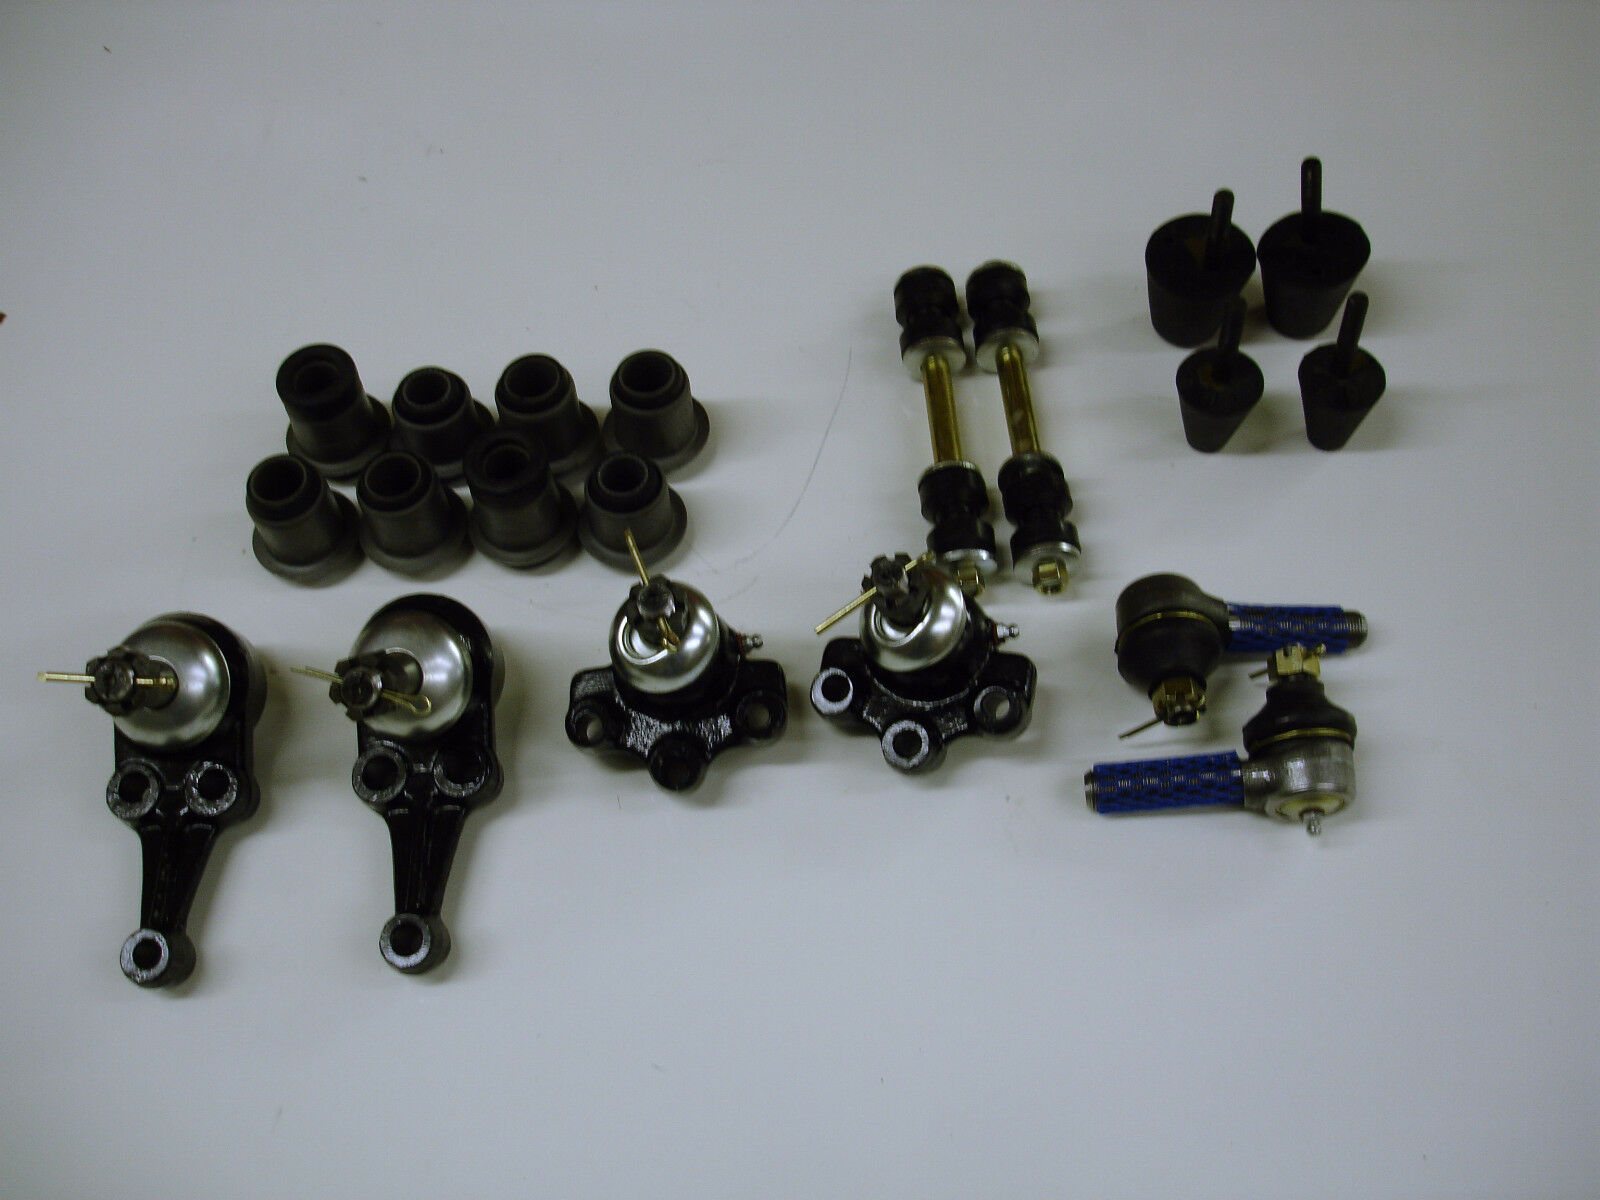 1955 1956 1957 Ford Thunderbird Front Suspension Rebuild Kit 20 F100 1 Of See More